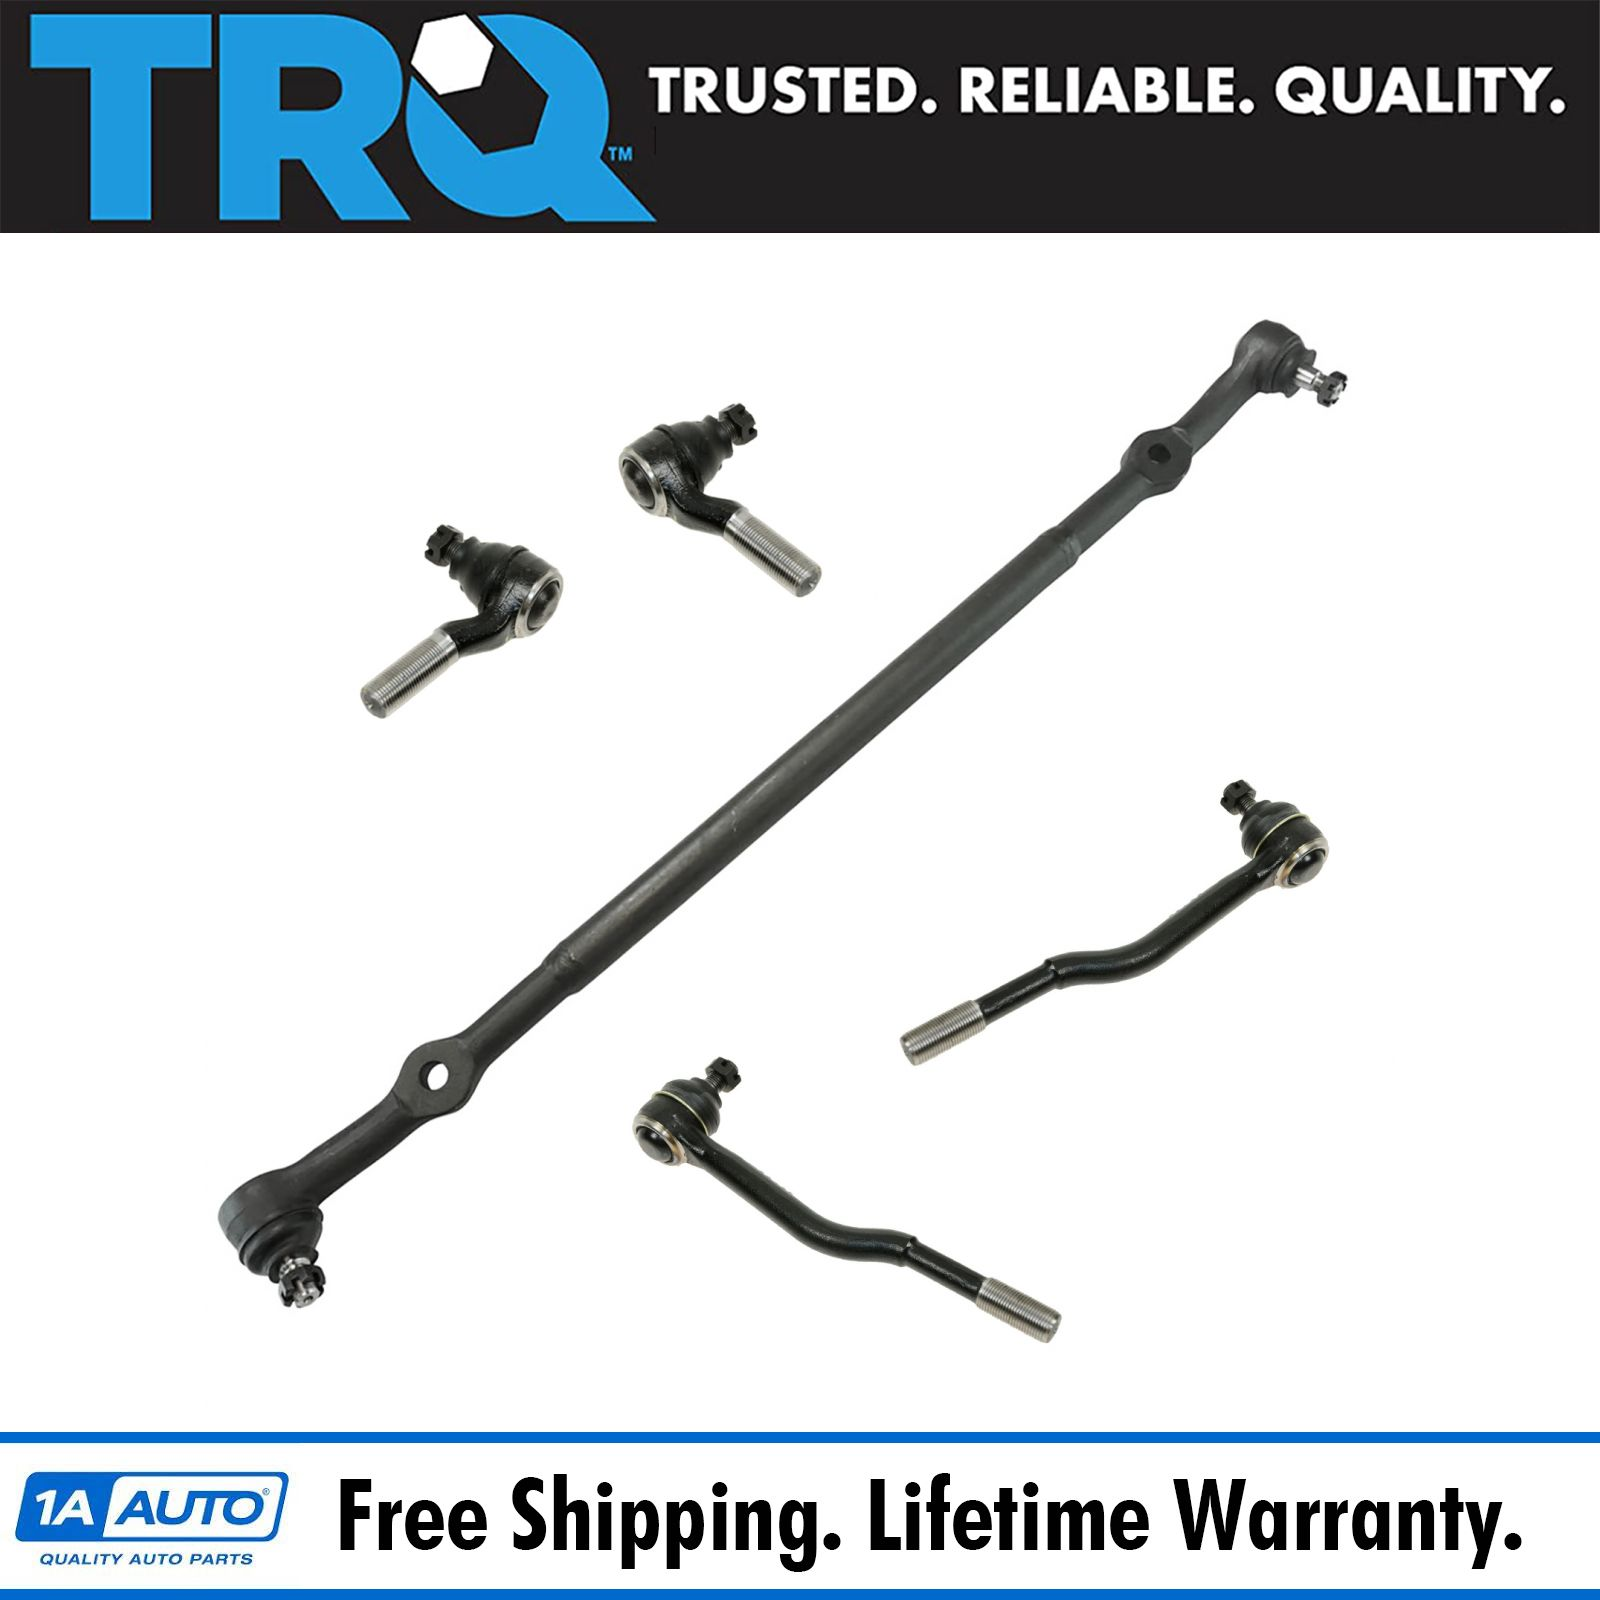 Front Tie Rod End /& Idler Arm 5Pc Suspension Kit Set For 89-95 Toyota Pickup 2WD